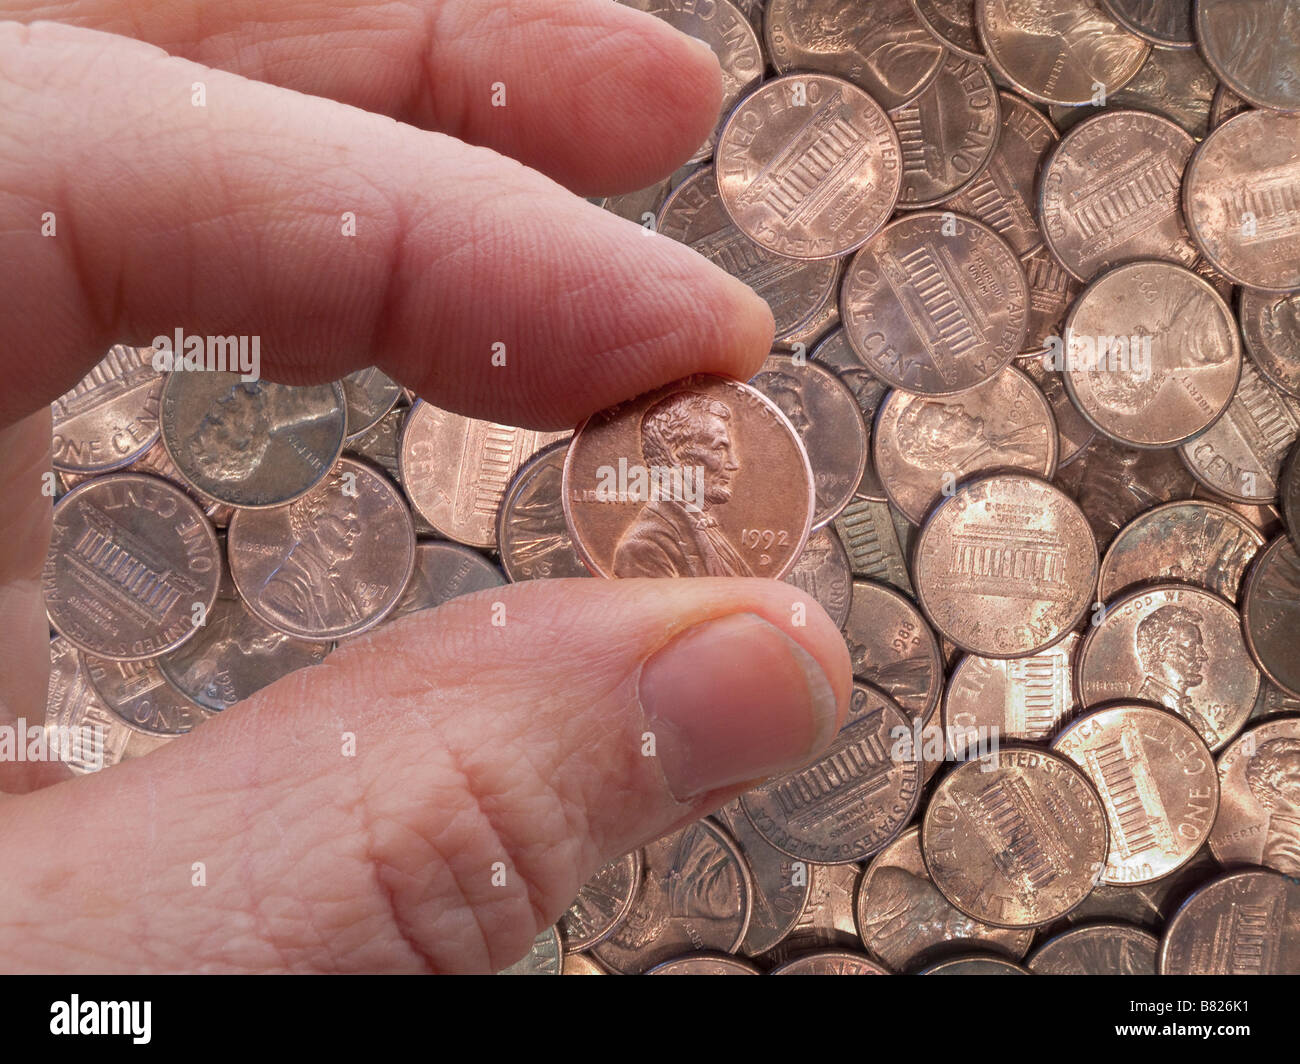 Hand holding penny, pennies as background - Stock Image